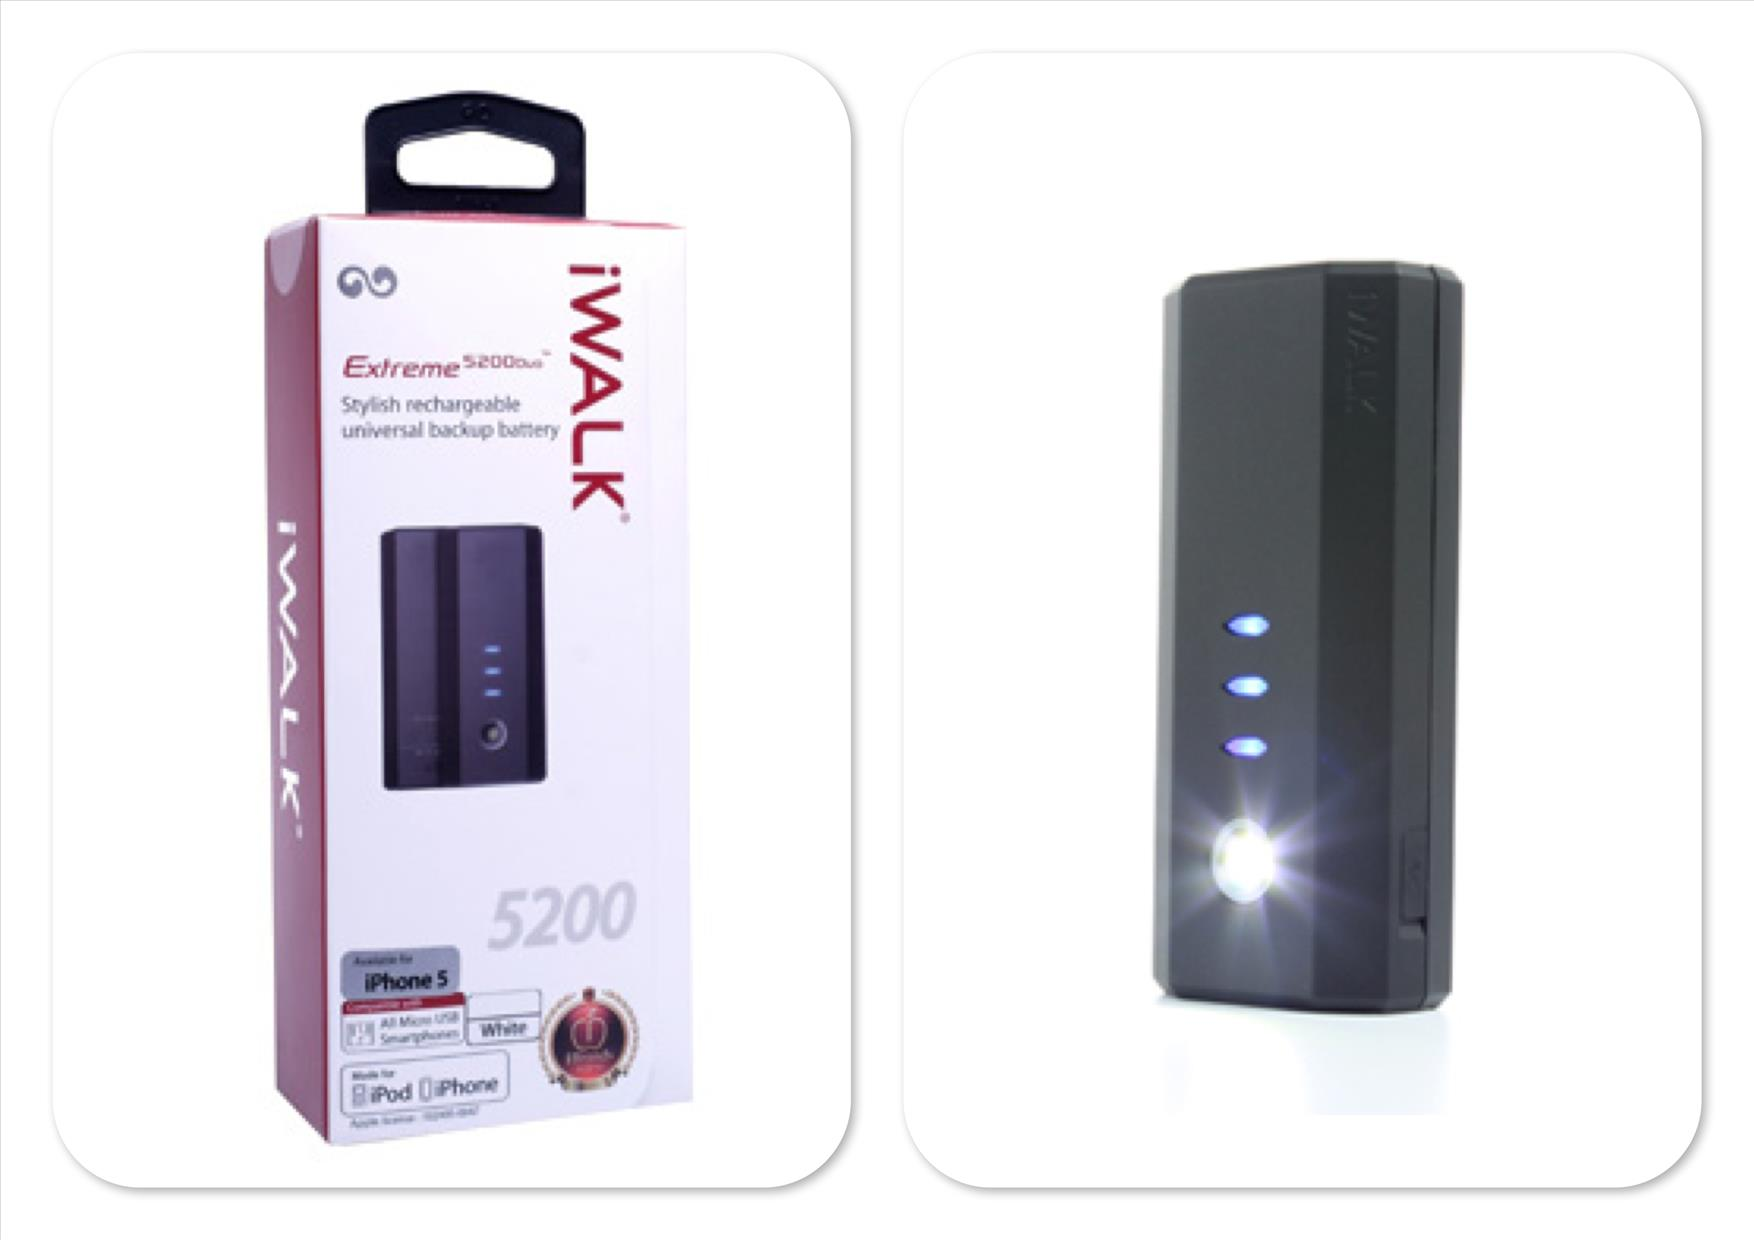 Bdotcom = iWalk Extreme 5200mah Duo Power Bank with 8pin Lightning